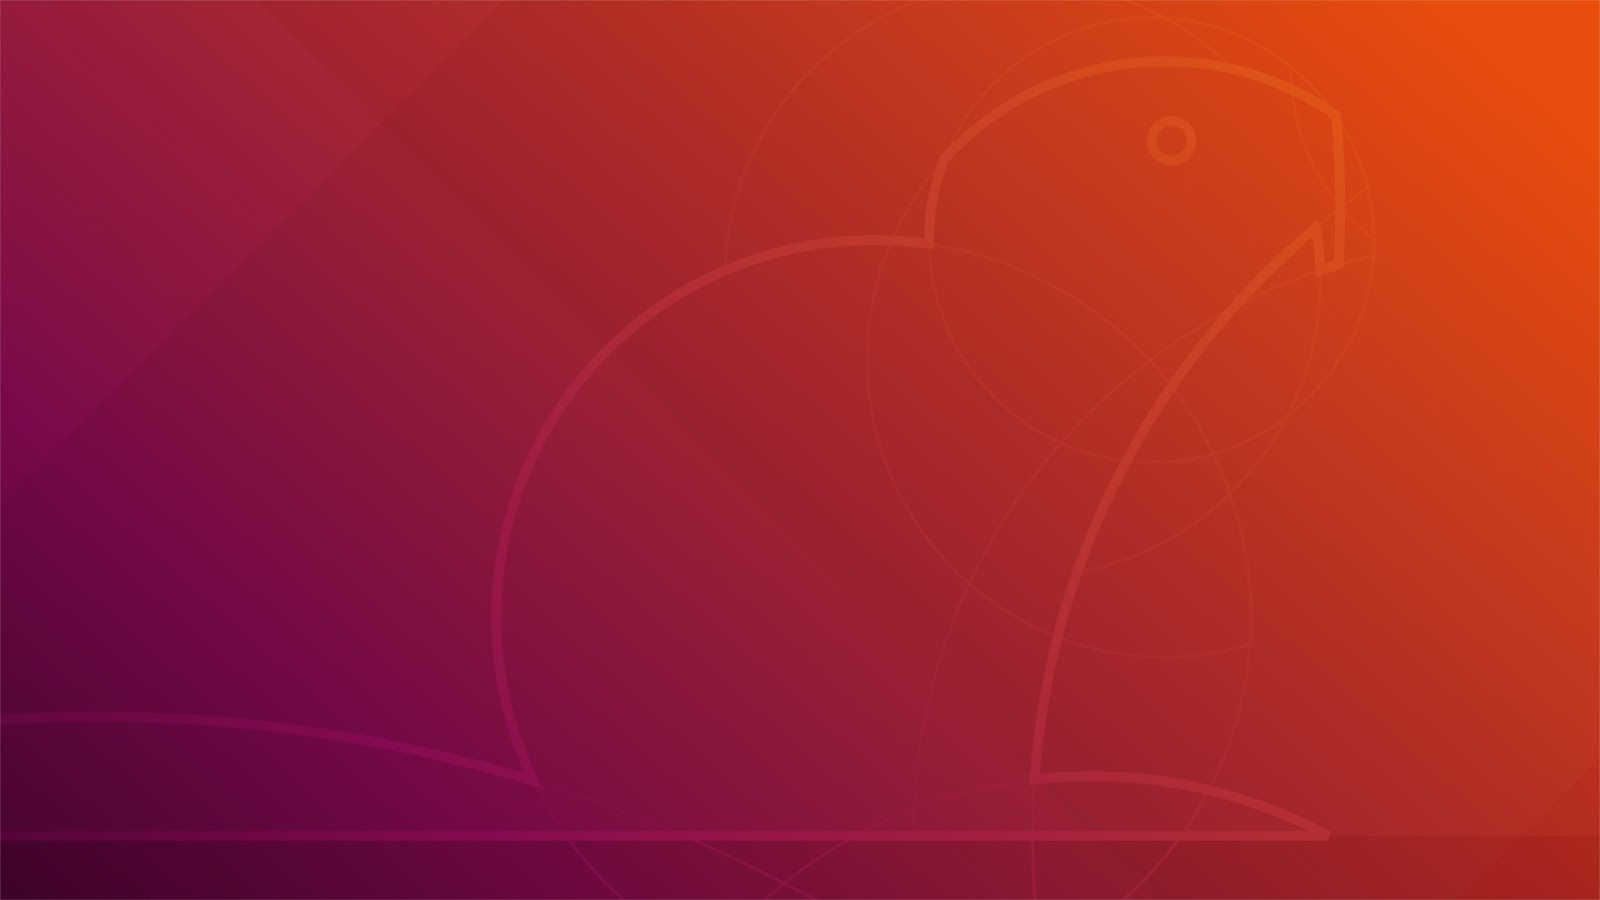 Wallpaper padrão do Ubuntu 18.04 LTS (Bionic Beaver)